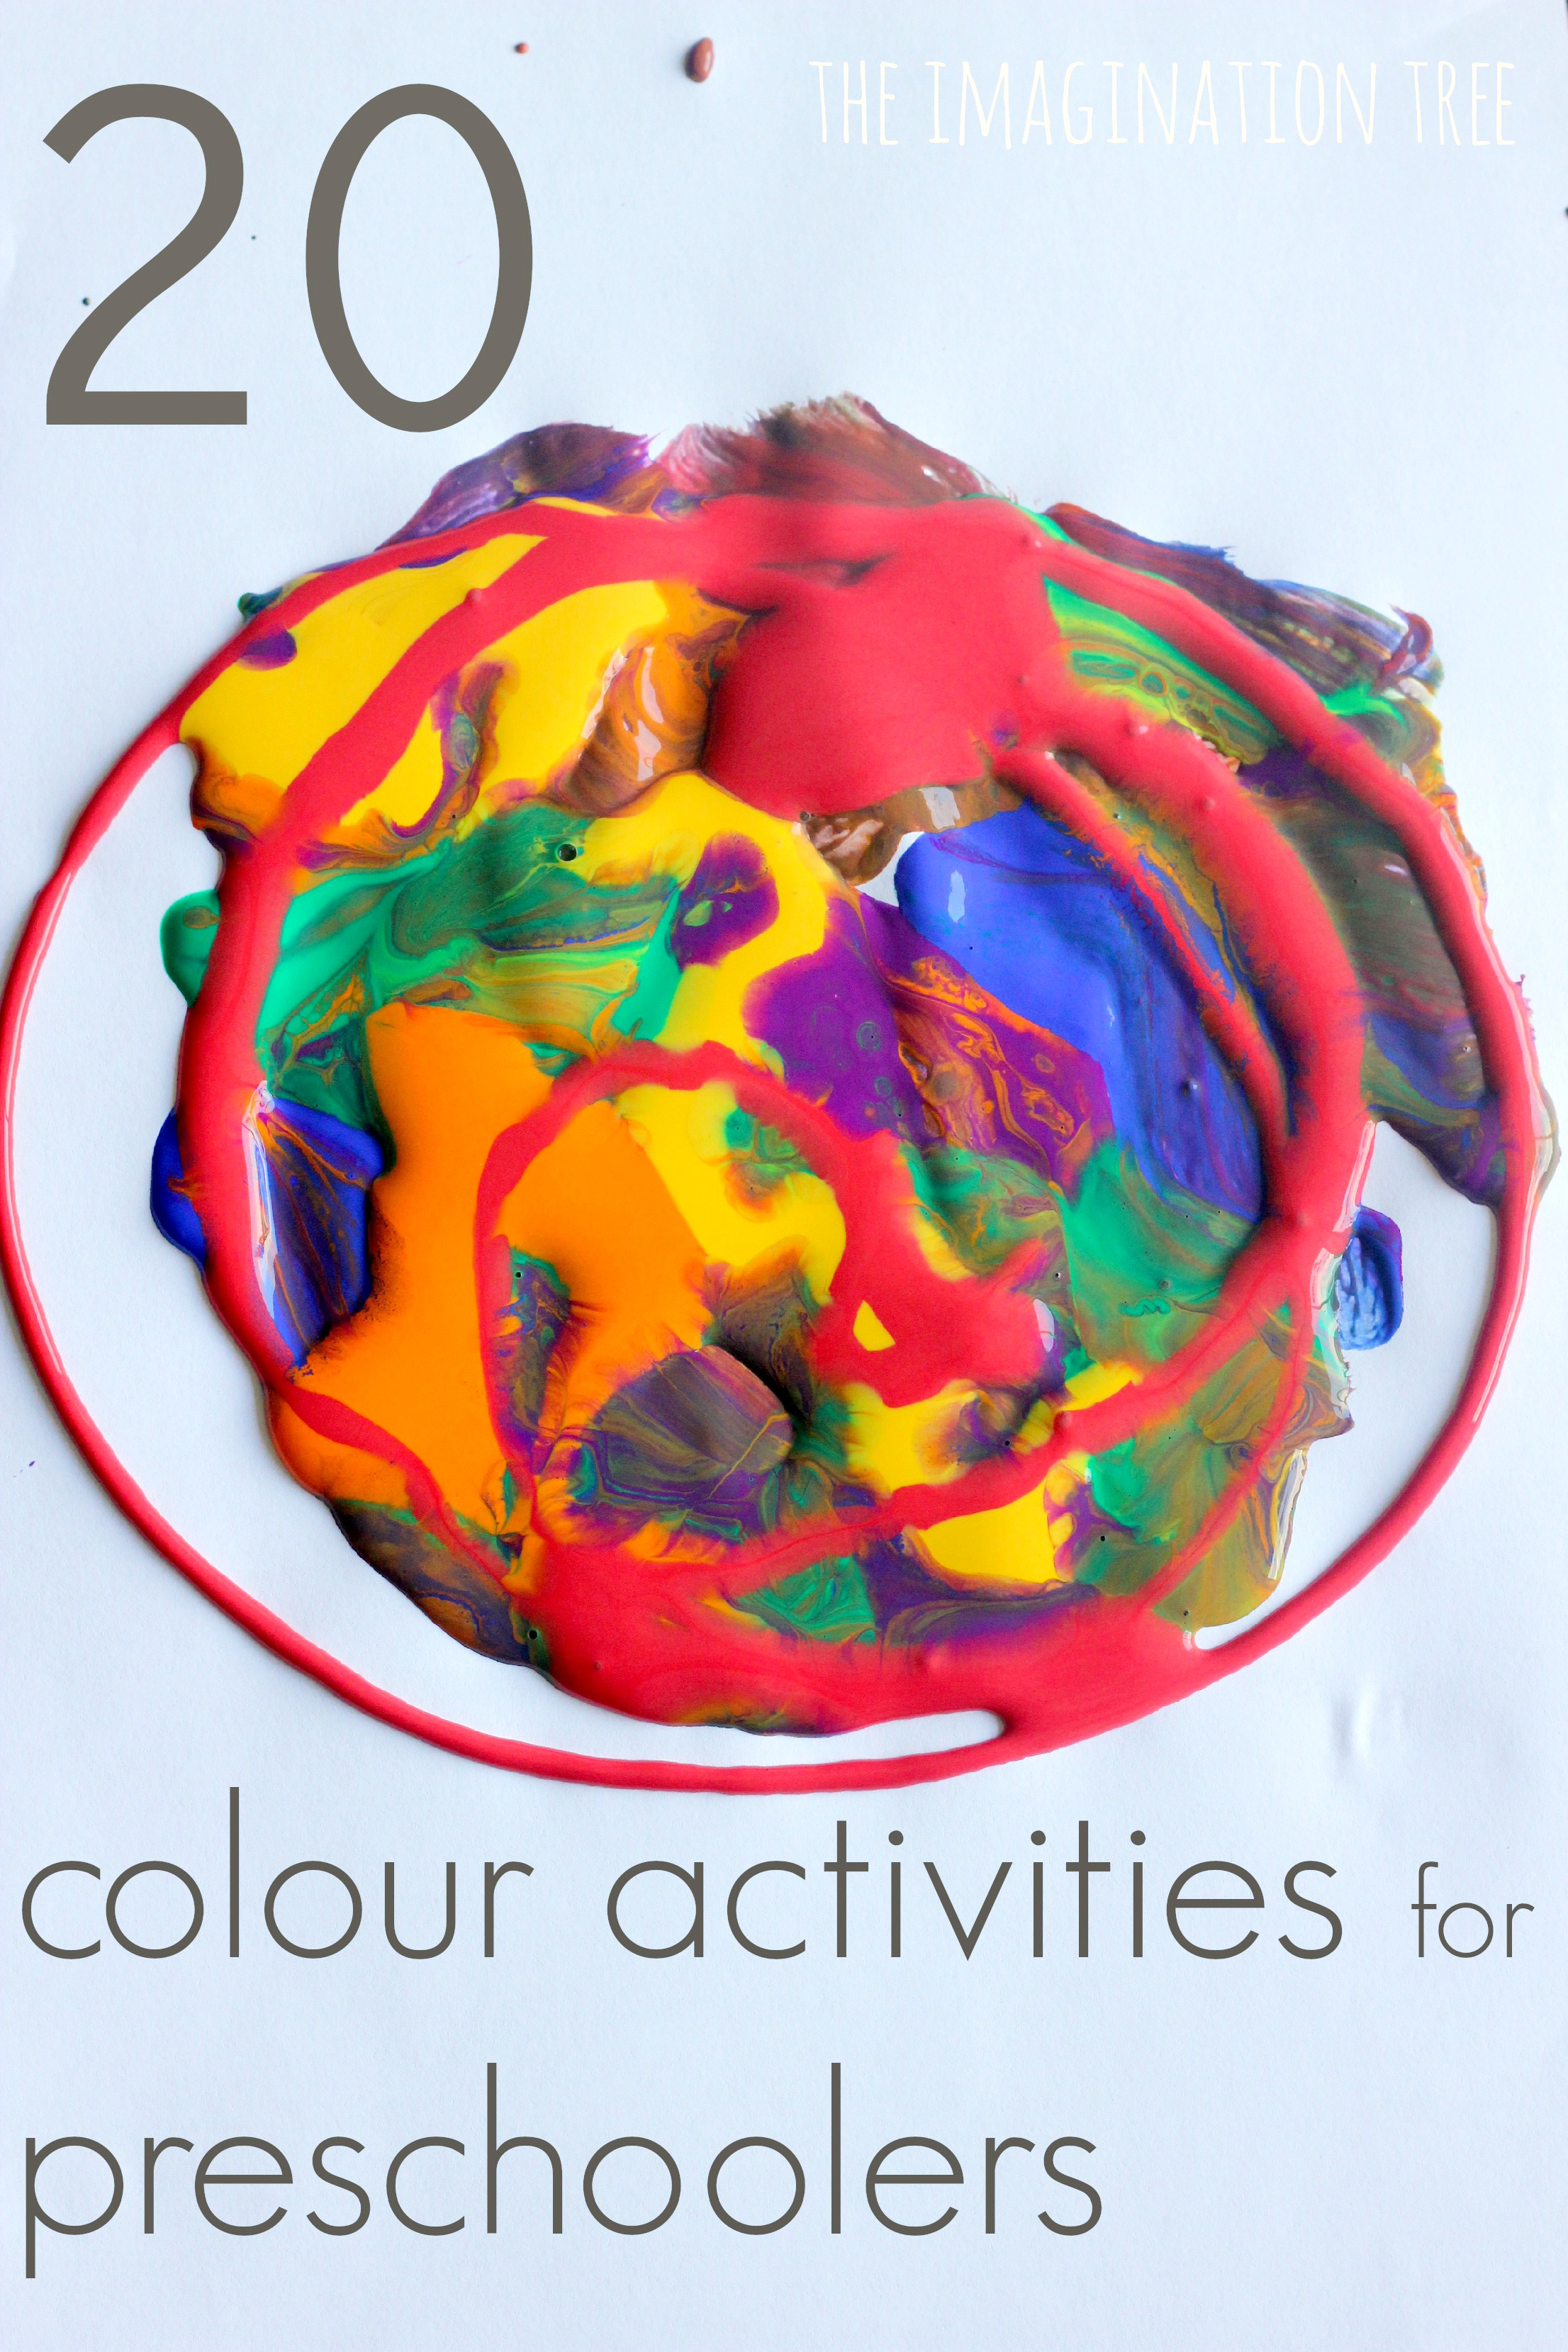 20 colour activities for preschoolers - Preschool Painting Games